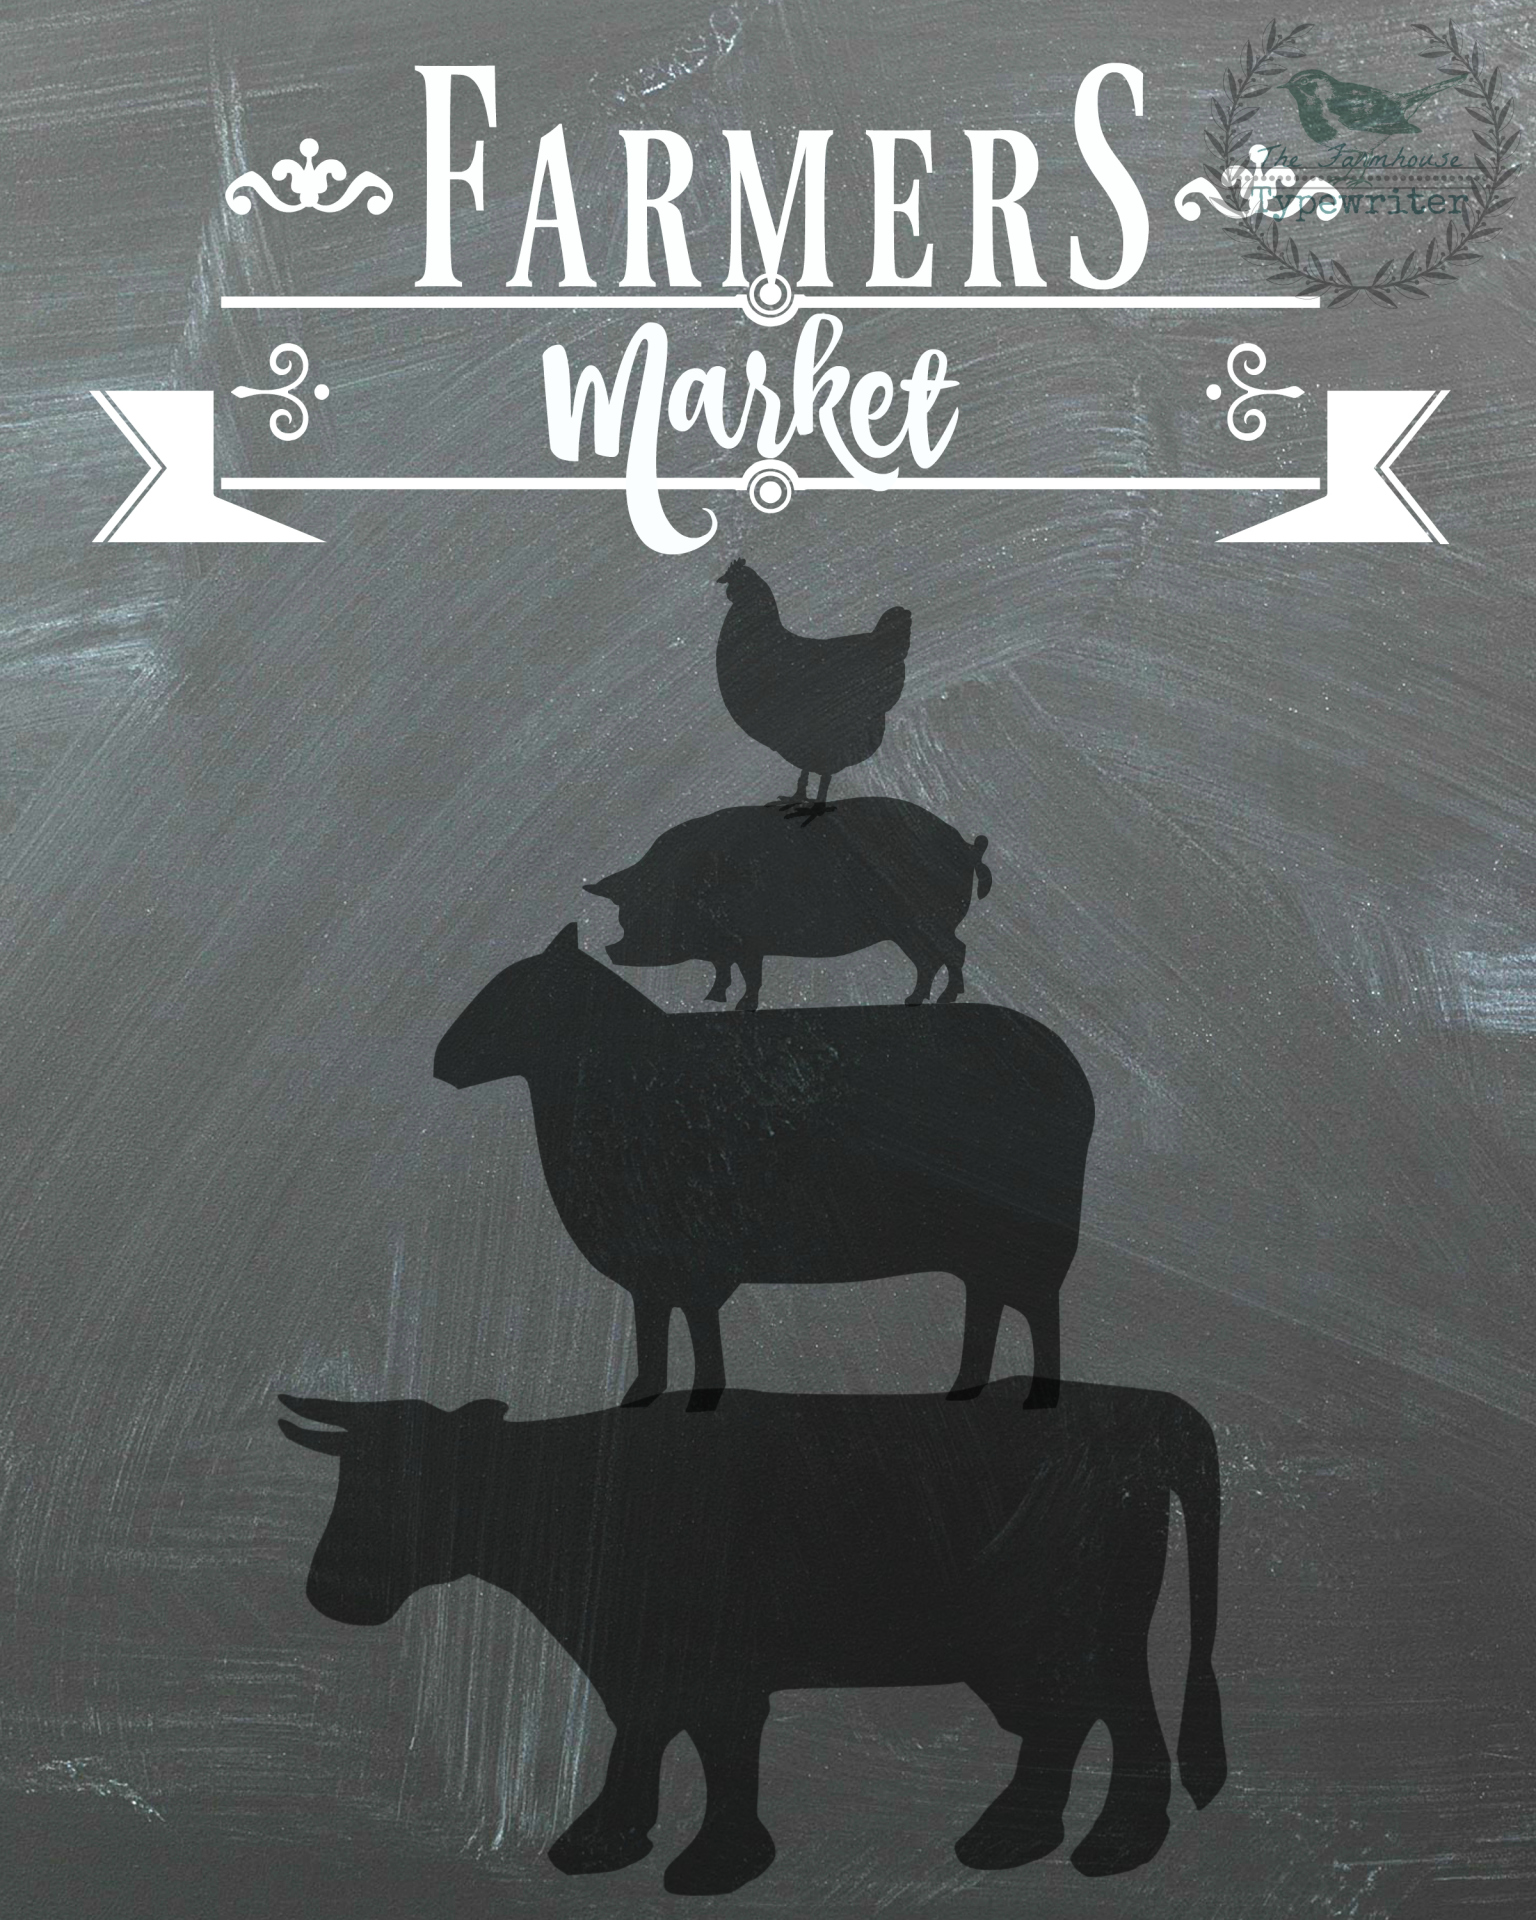 Farmers-Market-watermark